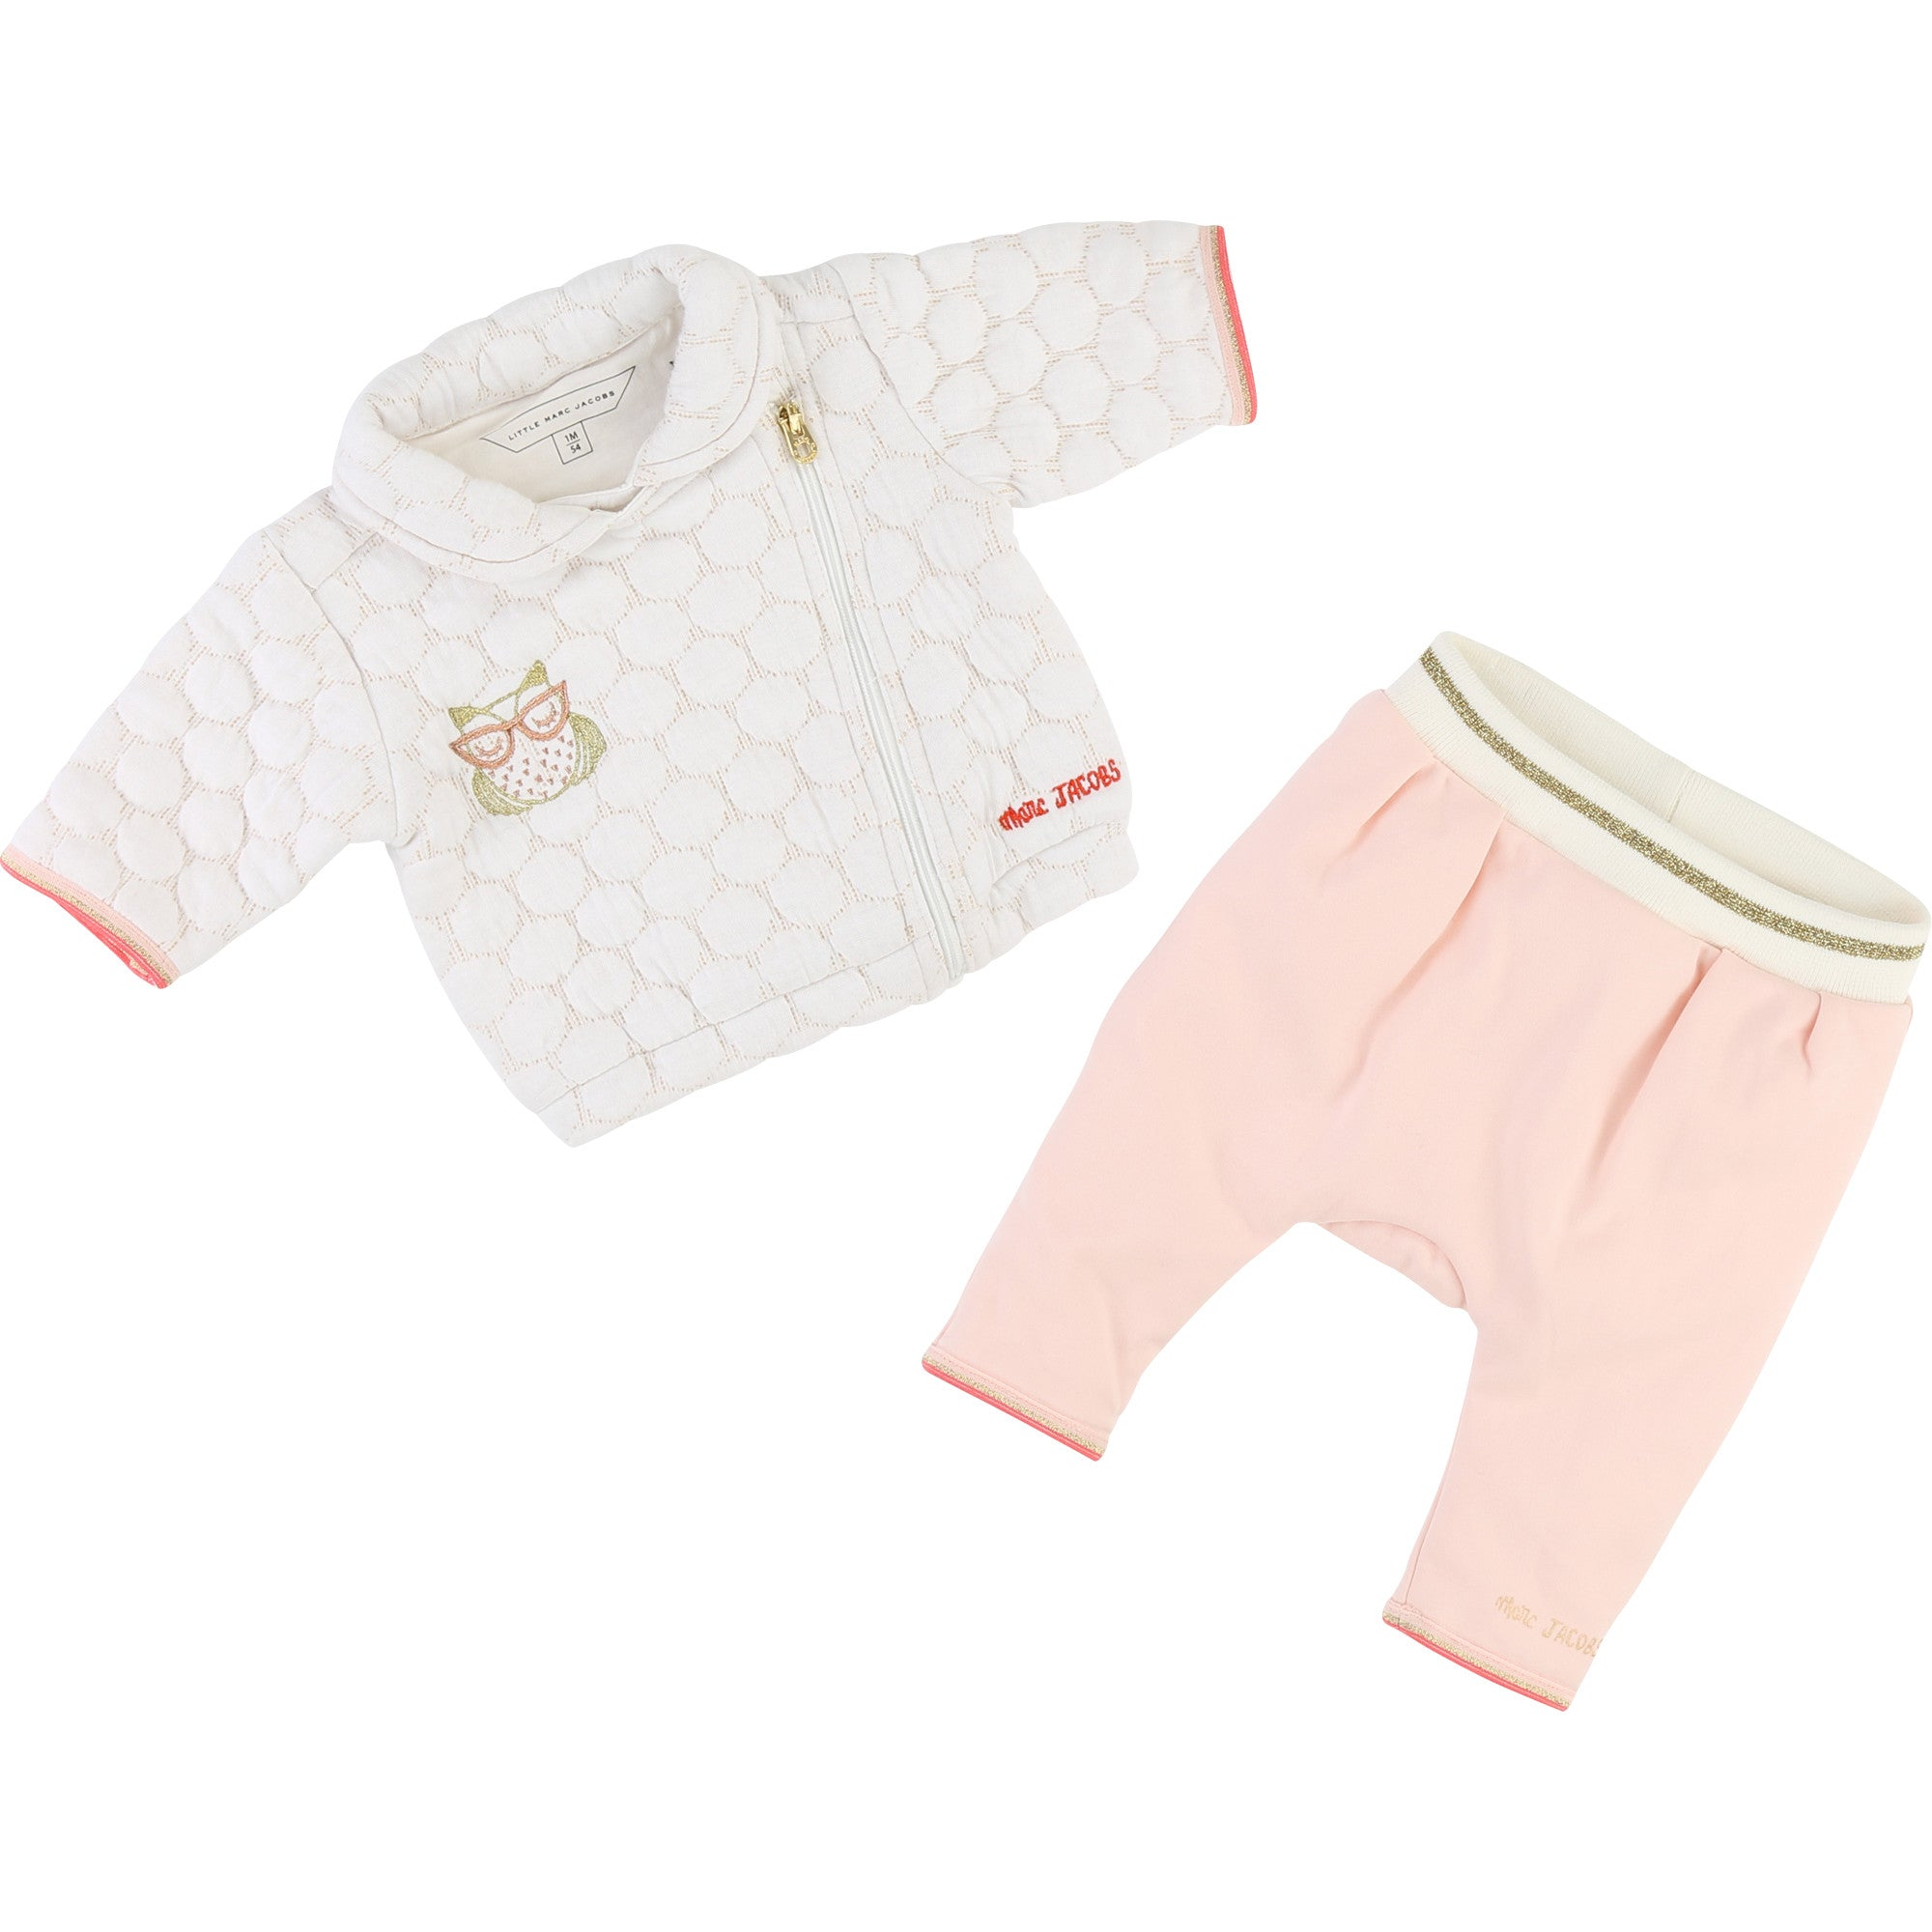 BABY UNISEX White and Pink CARDIGAN SET + PANTS